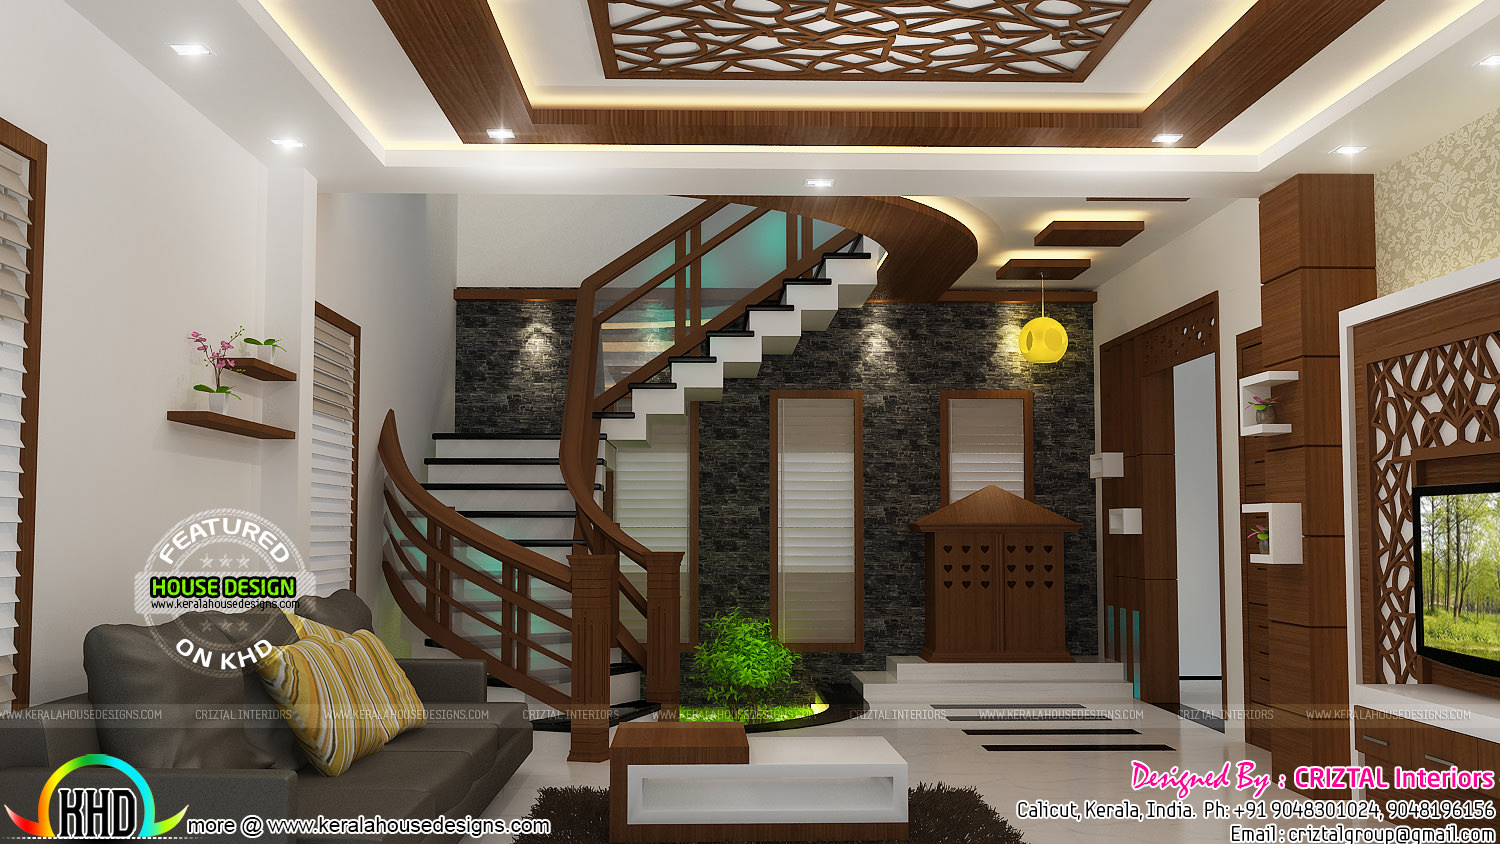 Bedroom dining hall and living interior kerala home for Living room interior in kerala